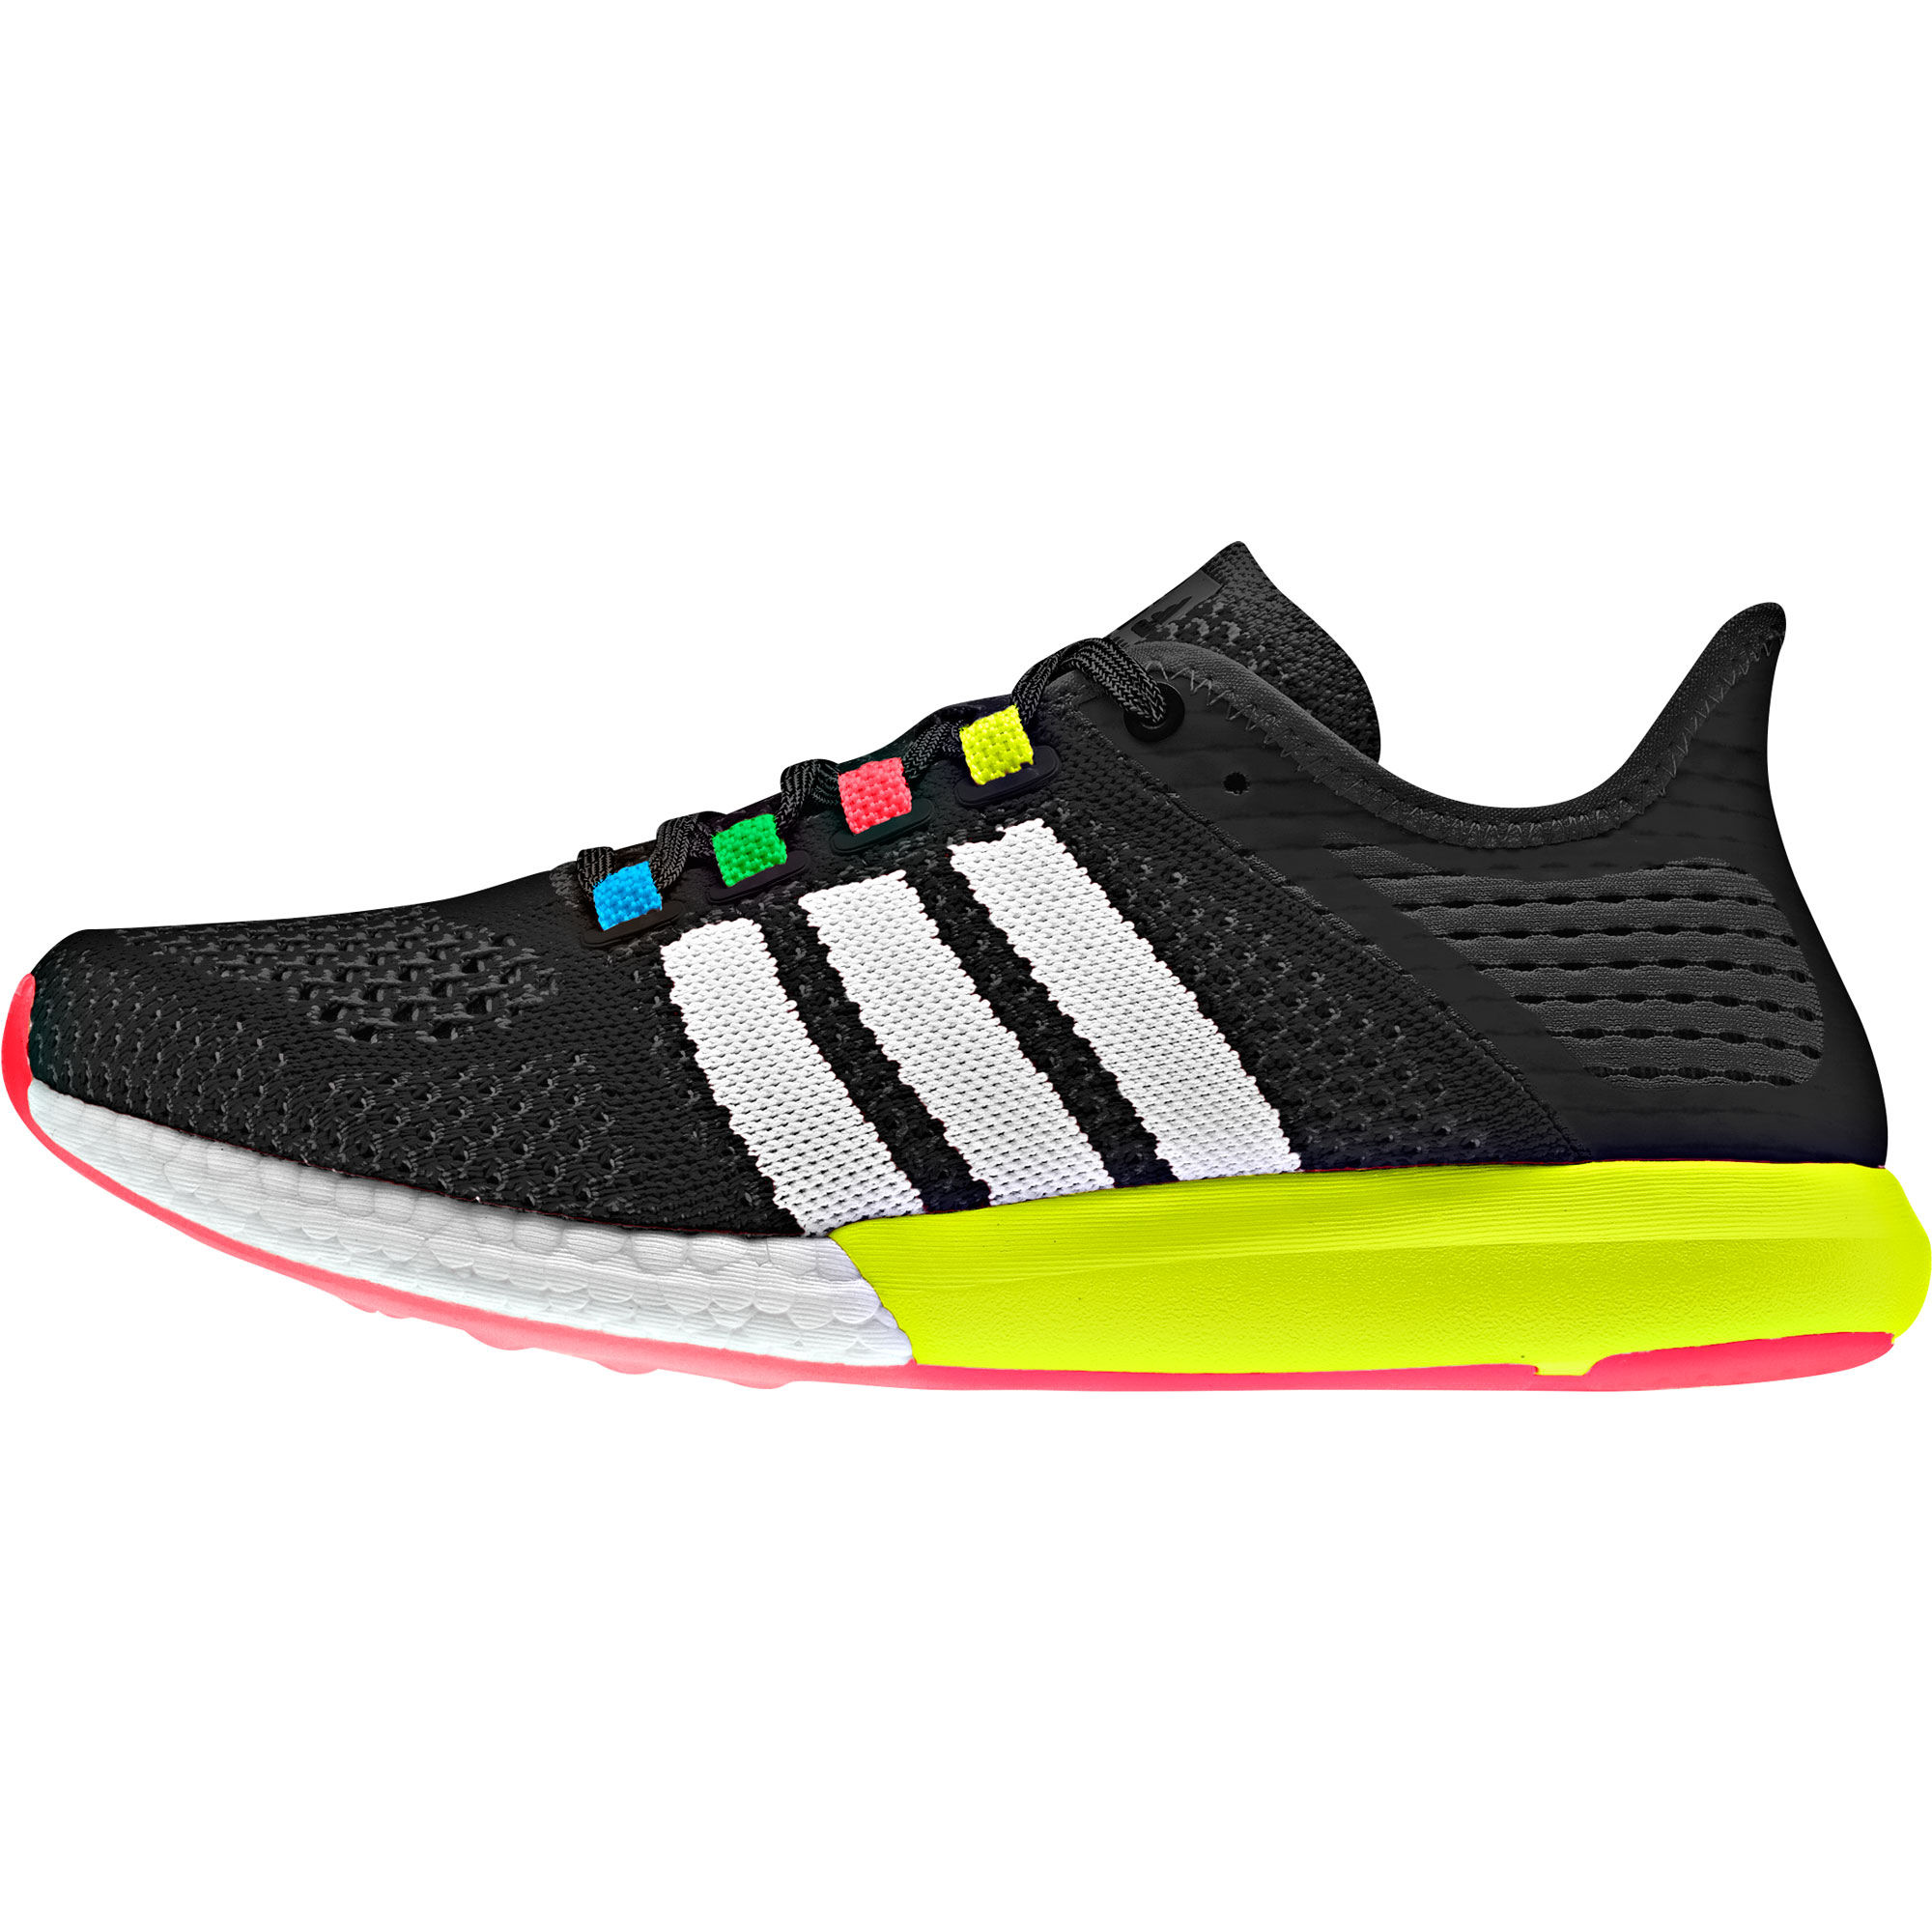 Adidas Boost Shoes For Women